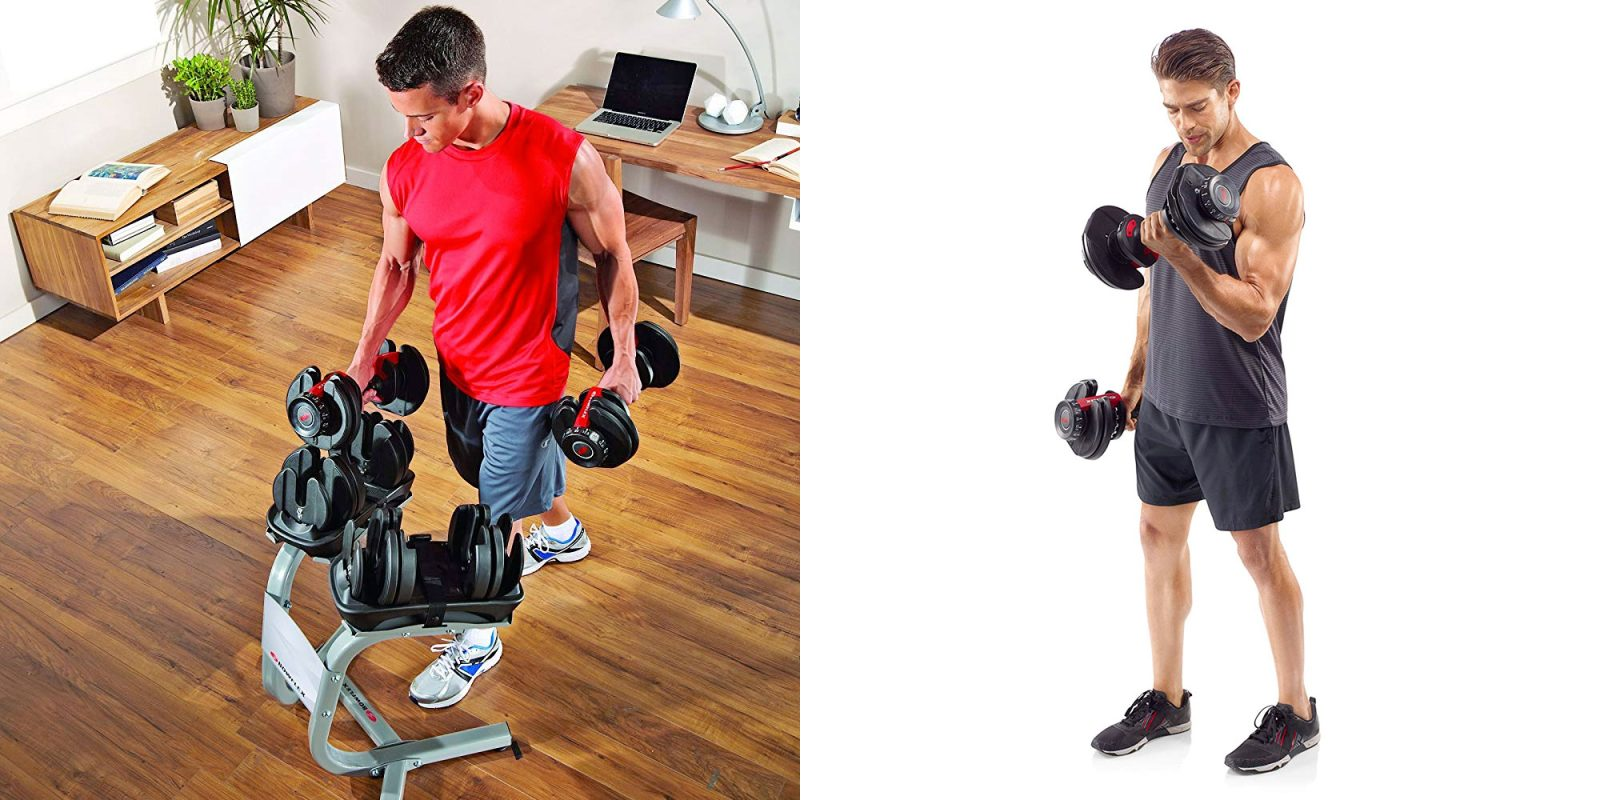 Get fit with Bowflex's SelectTech 552 adjustable dumbbells at $240 (Reg. $300)